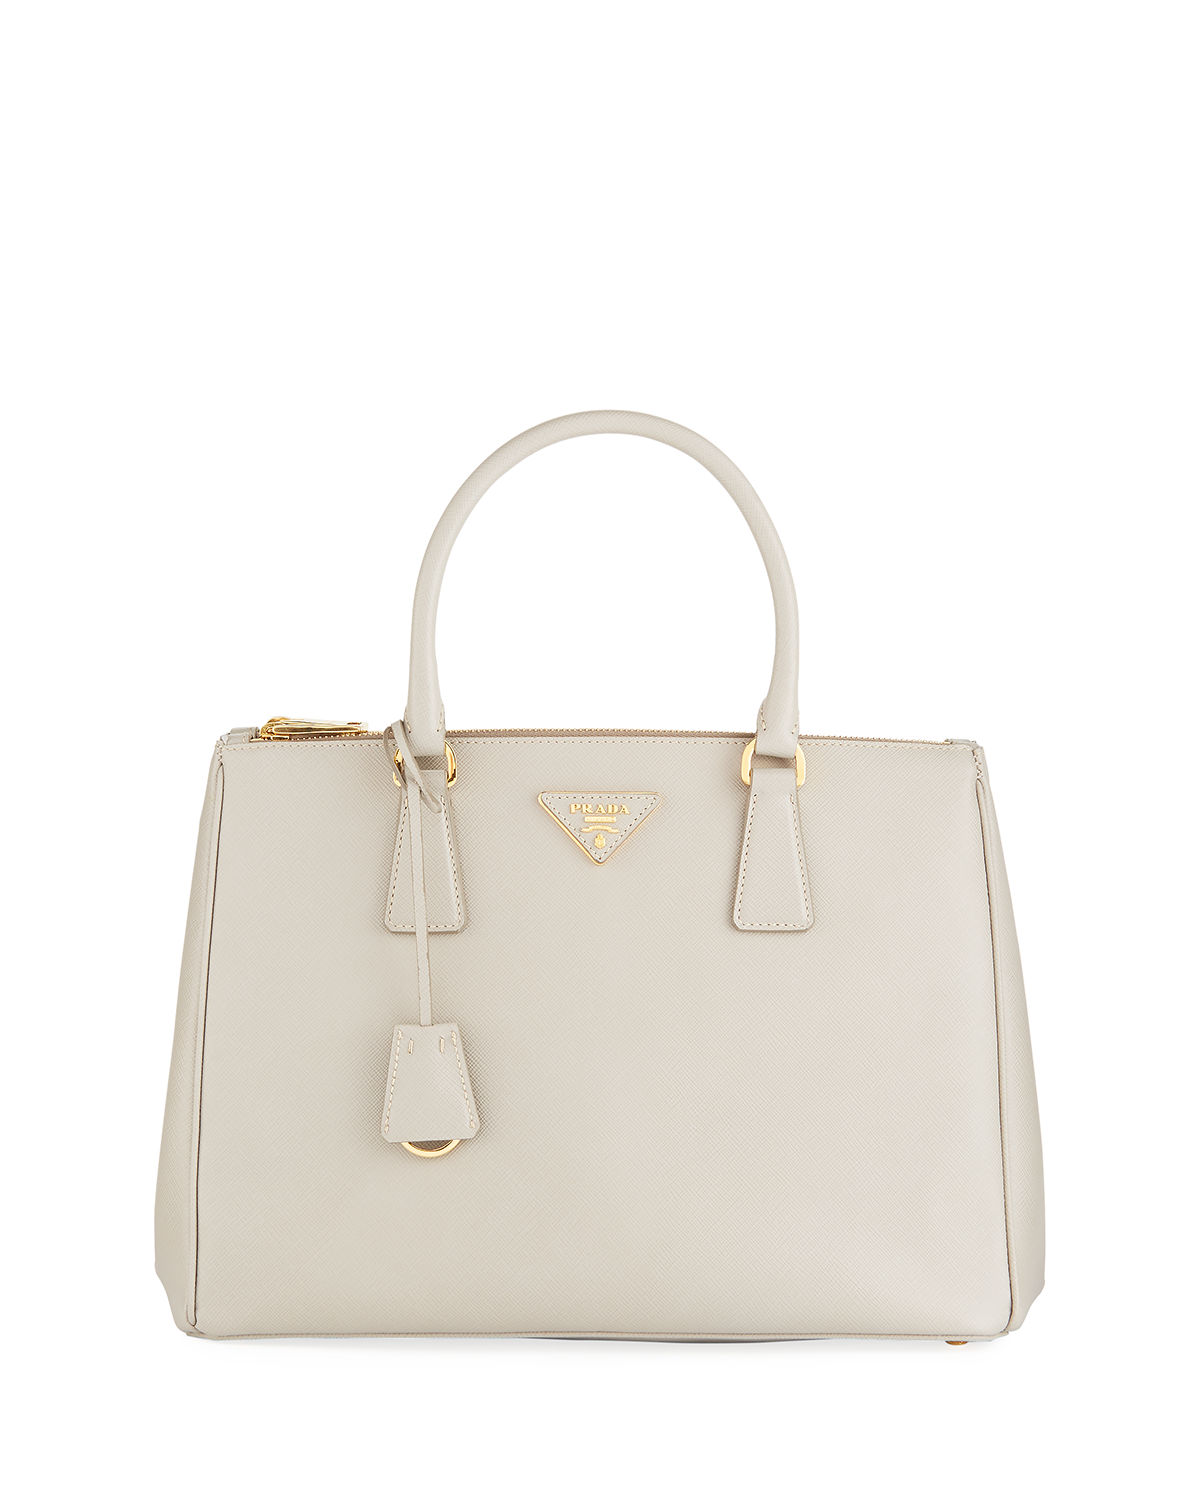 38979994459c Prada Galleria Medium Saffiano Tote Bag